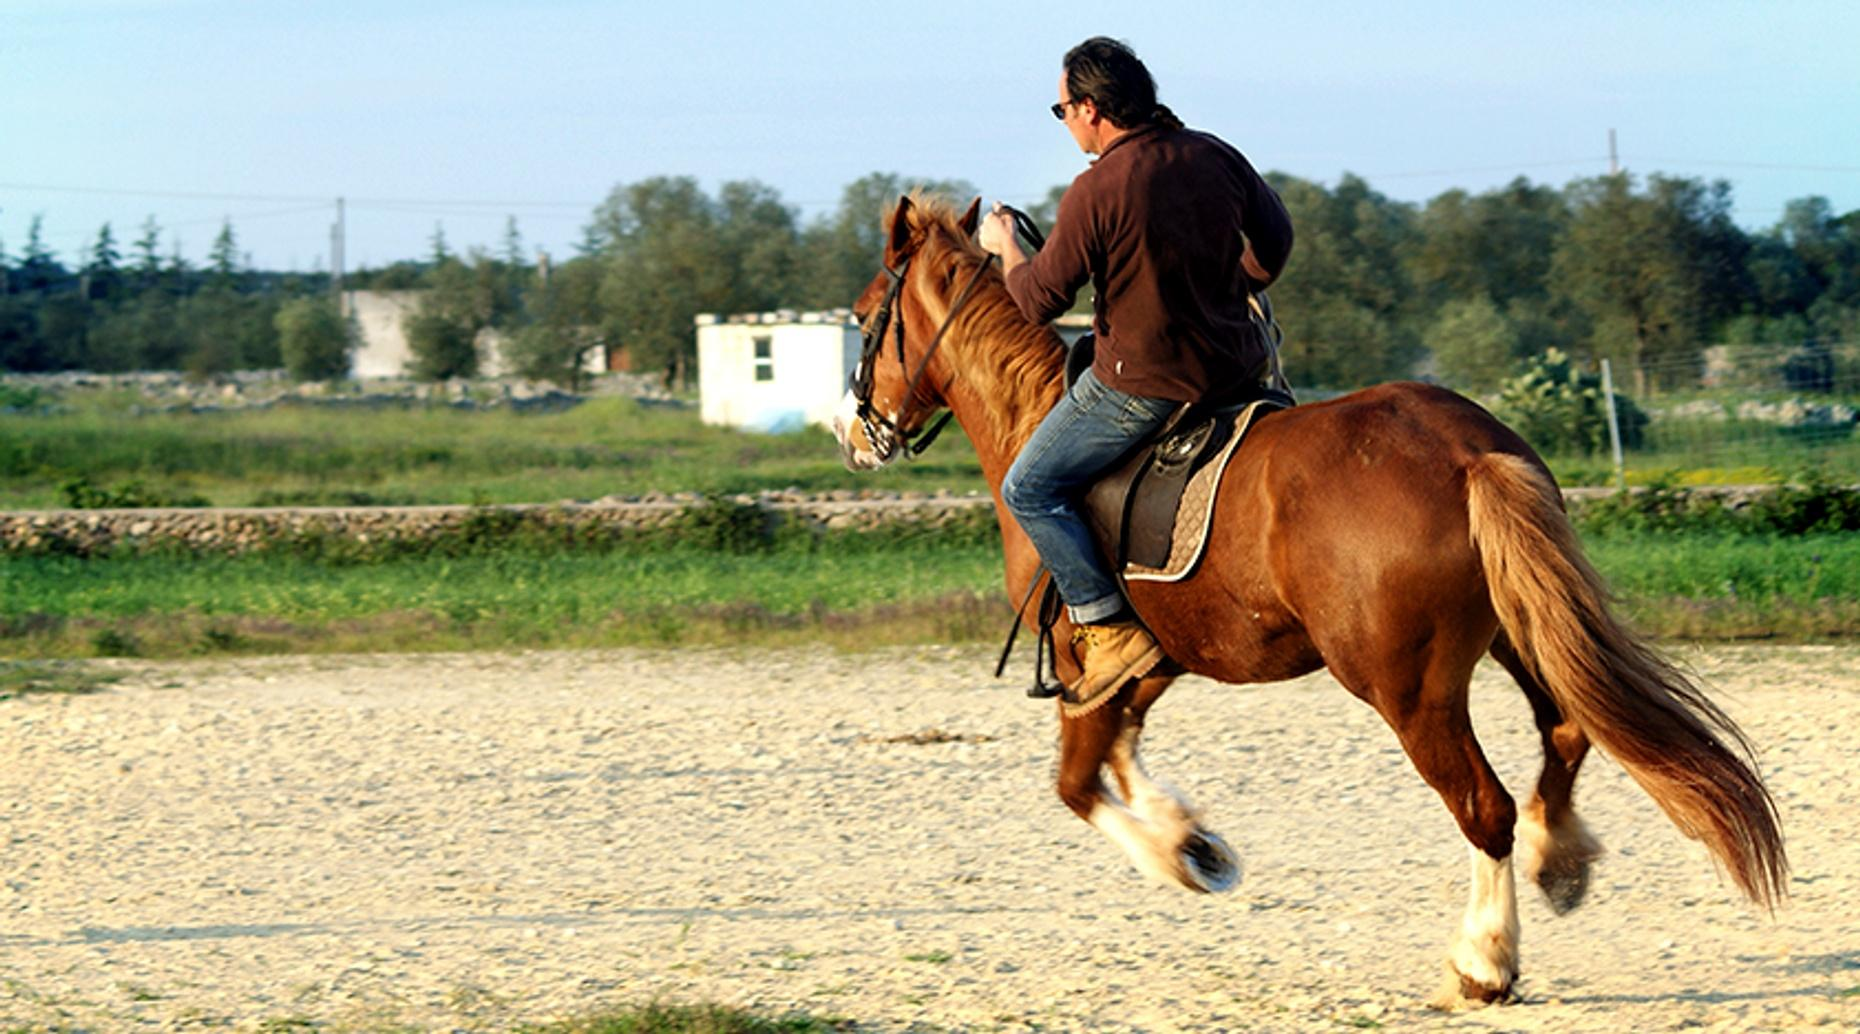 Scenic Horseback Riding Lesson in Miami